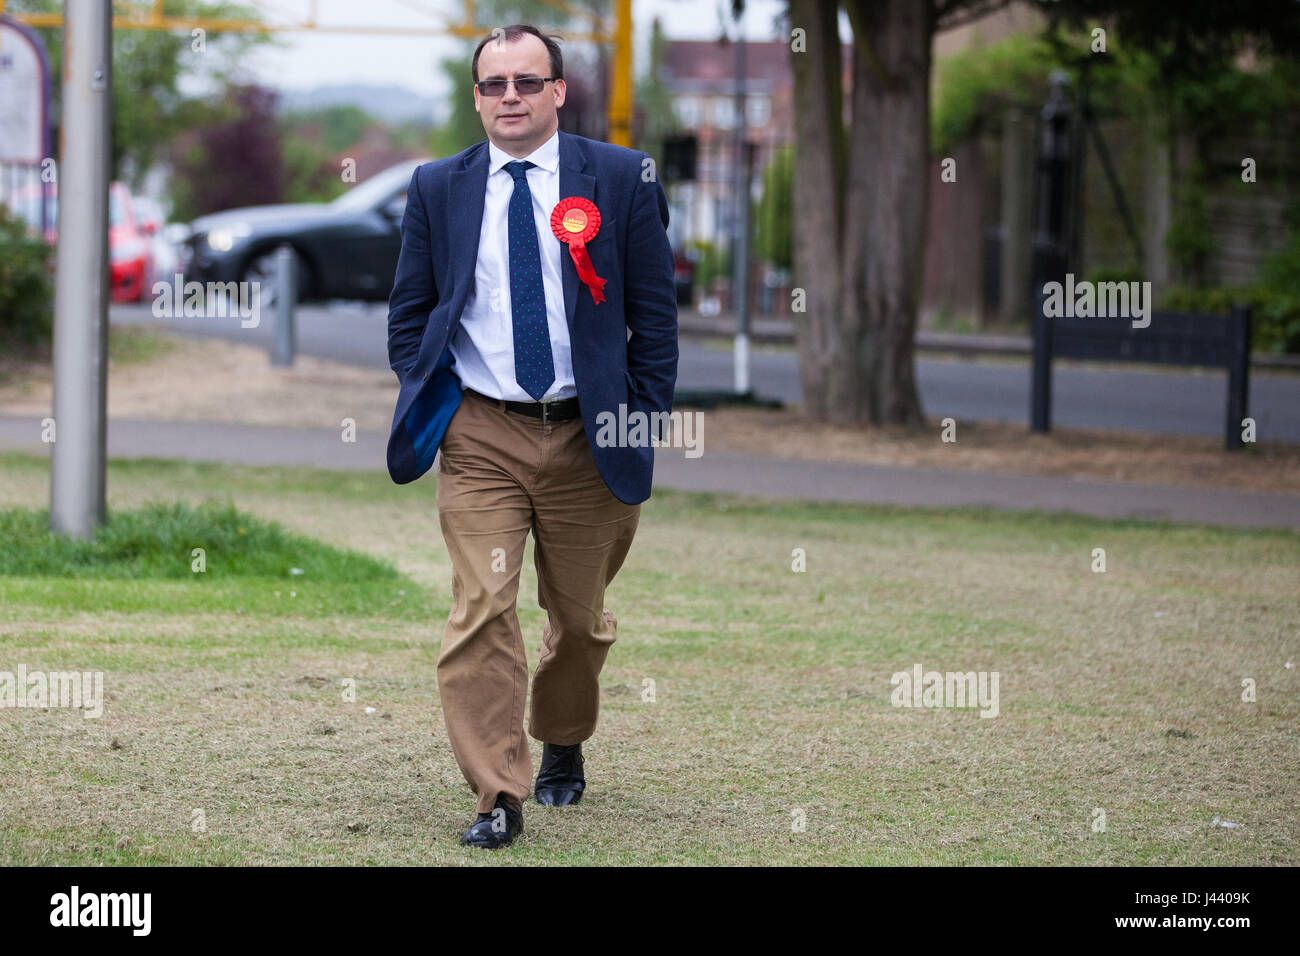 London, UK. 9th May, 2017. Gareth Thomas, Labour and Co-operative candidate for Harrow West, arrives for a campaign - Stock Image